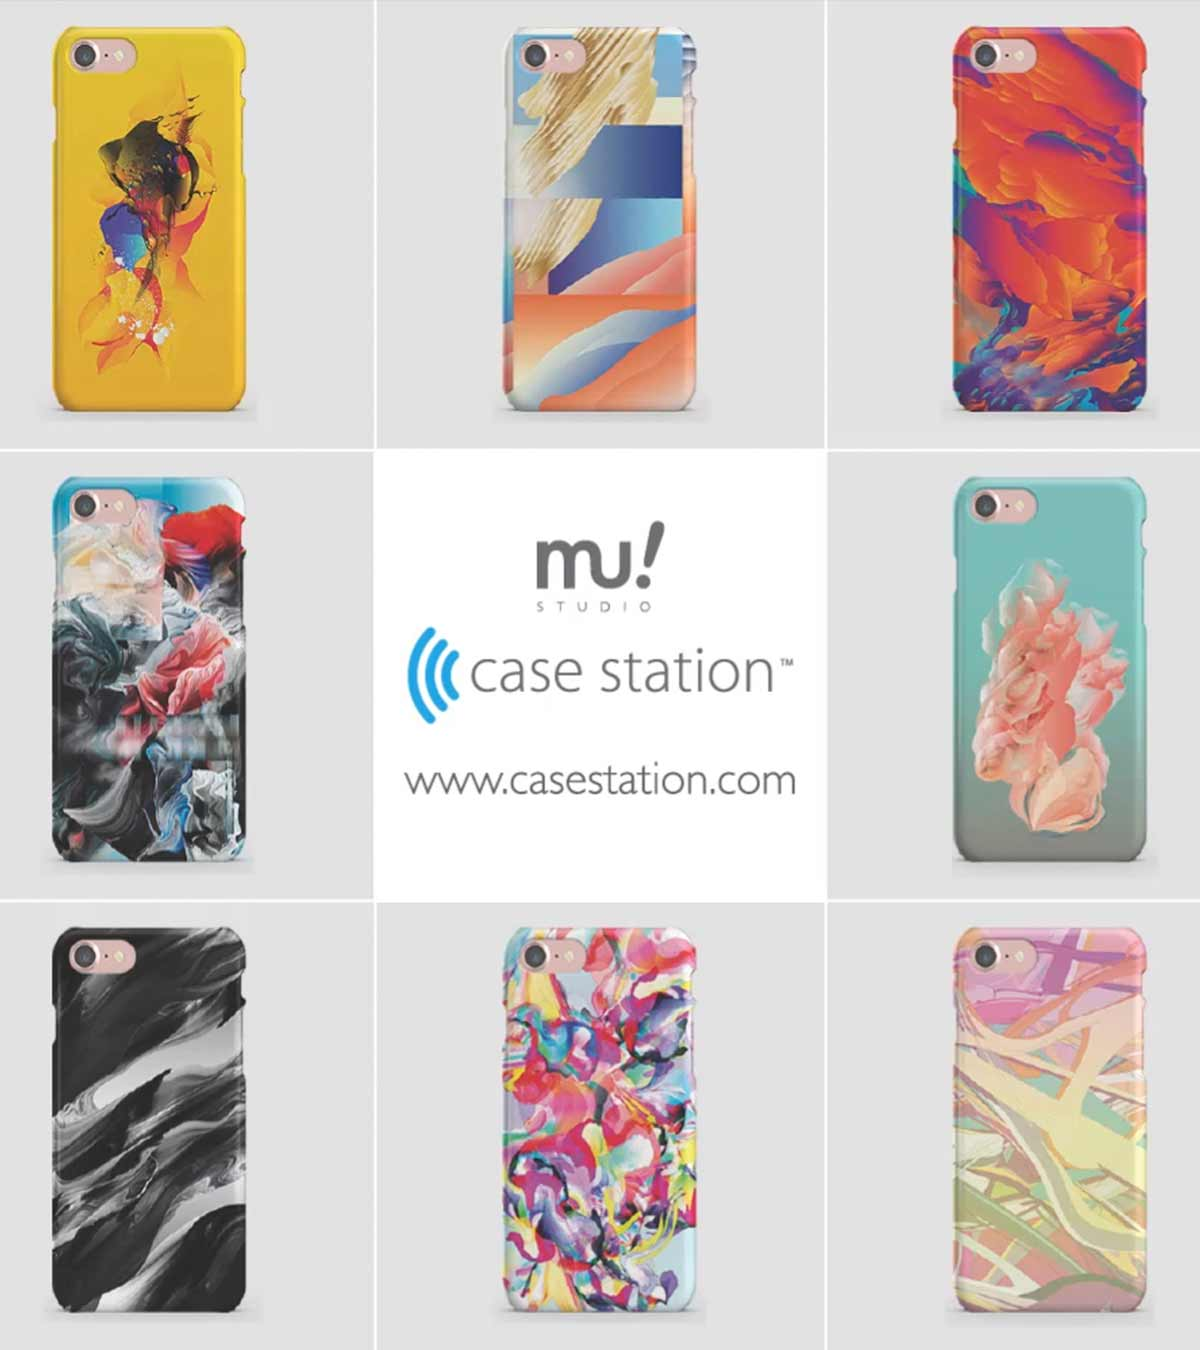 case-station-mu-studio-abstract-art-sebastian-murra